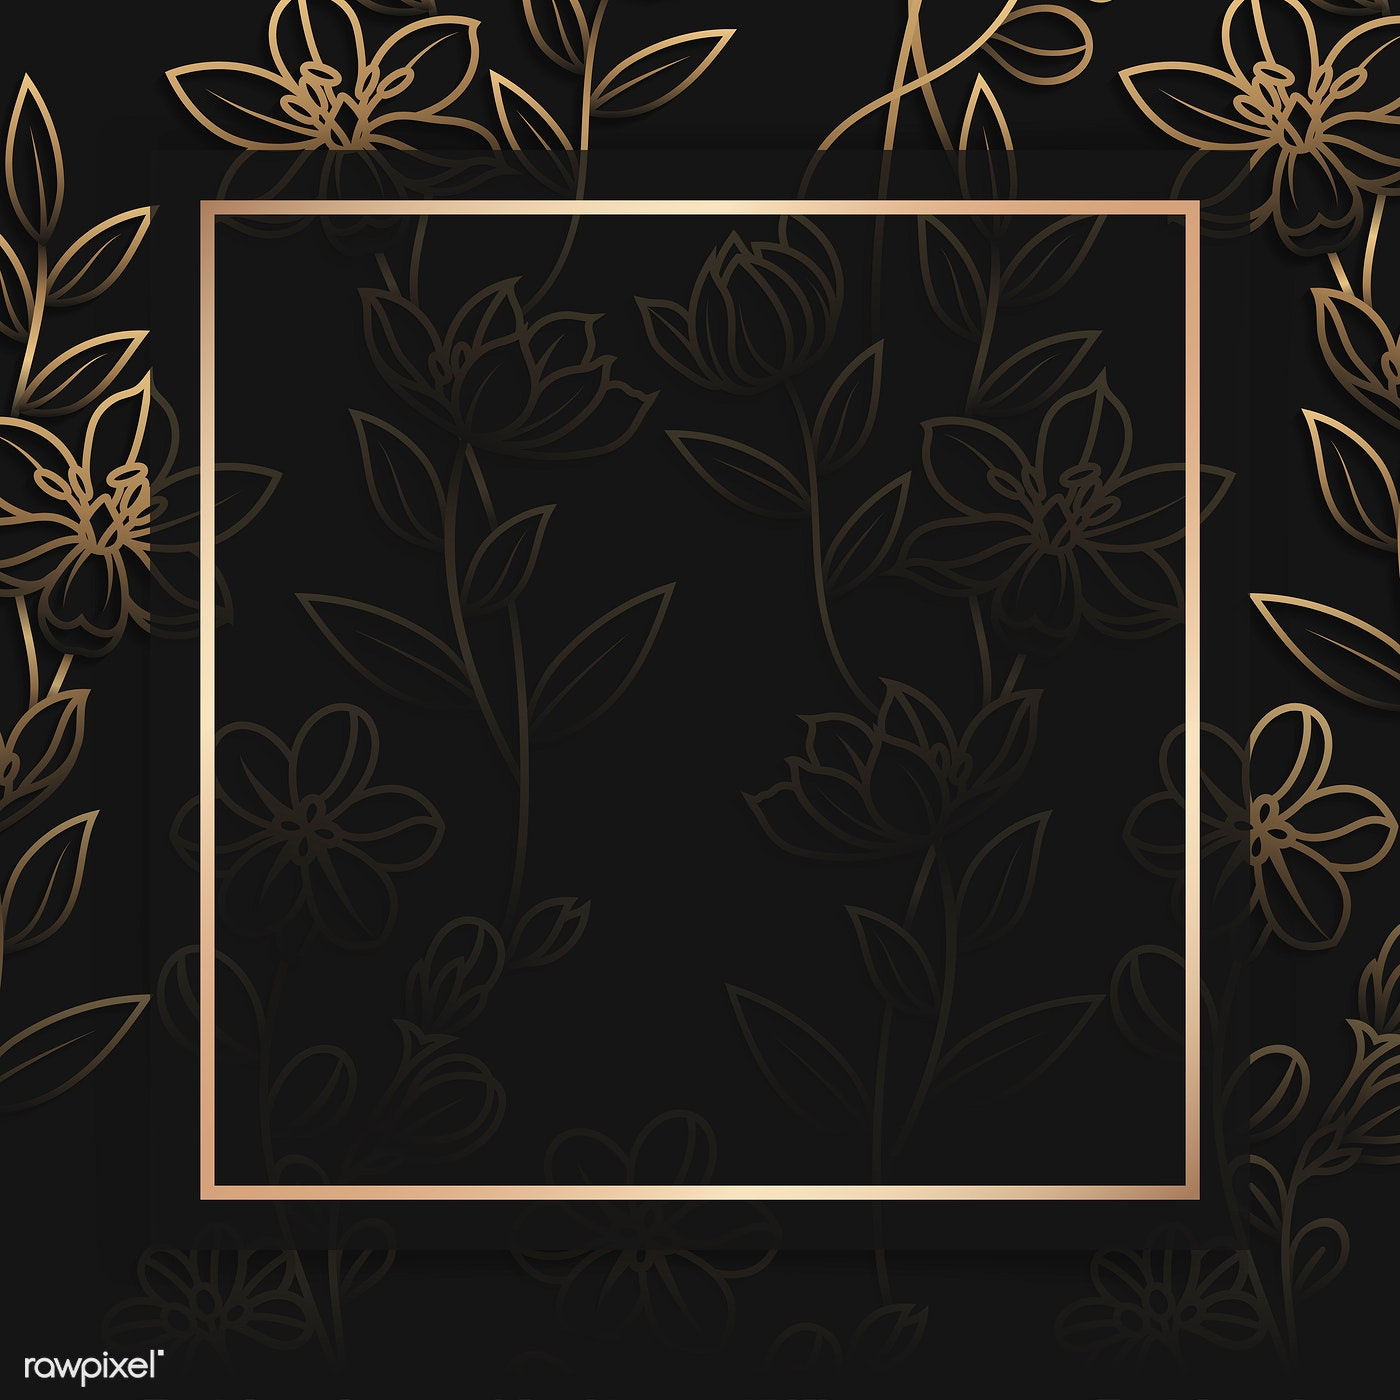 Floral Gold Frame Royalty Free Vector 1218089